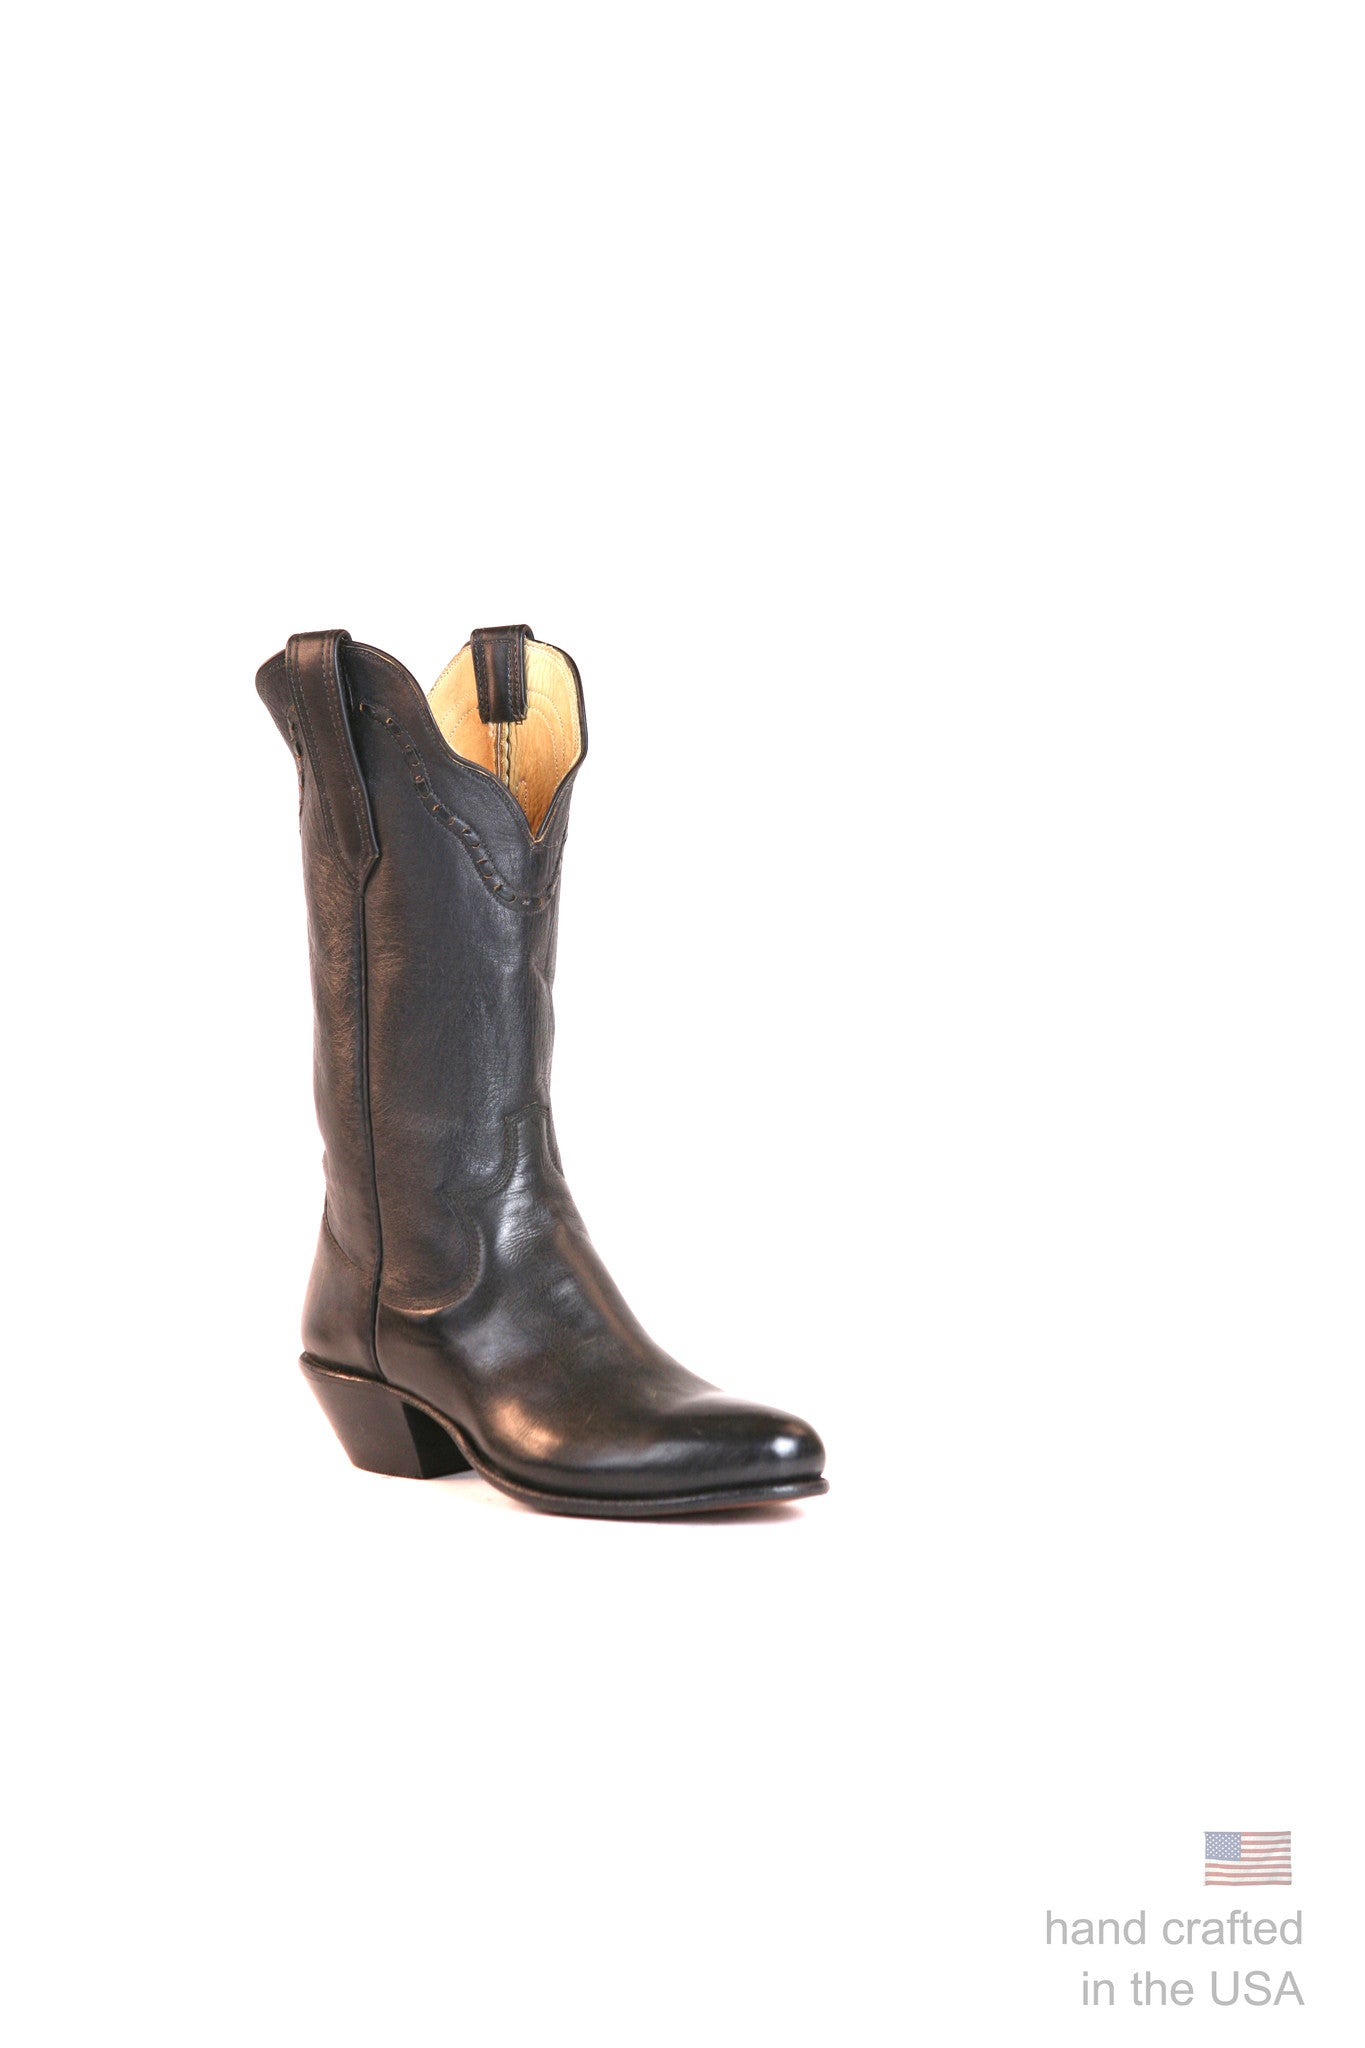 Singles: Boot 0025: Size 4.5 C